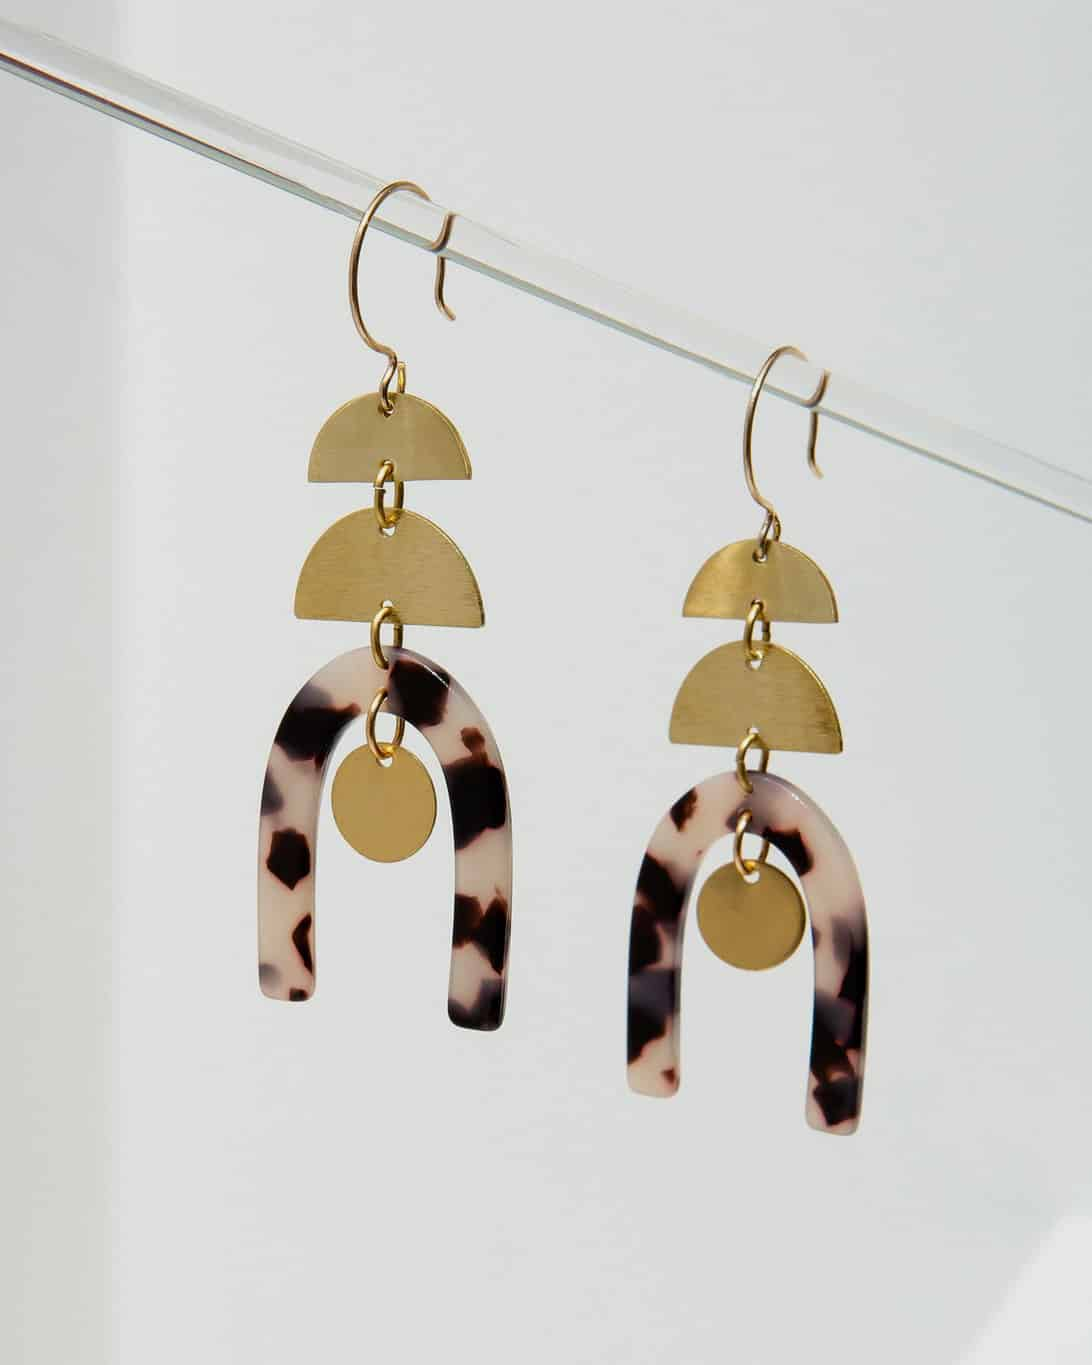 mille tortoise earrings hanging from brass with tortoise pendants